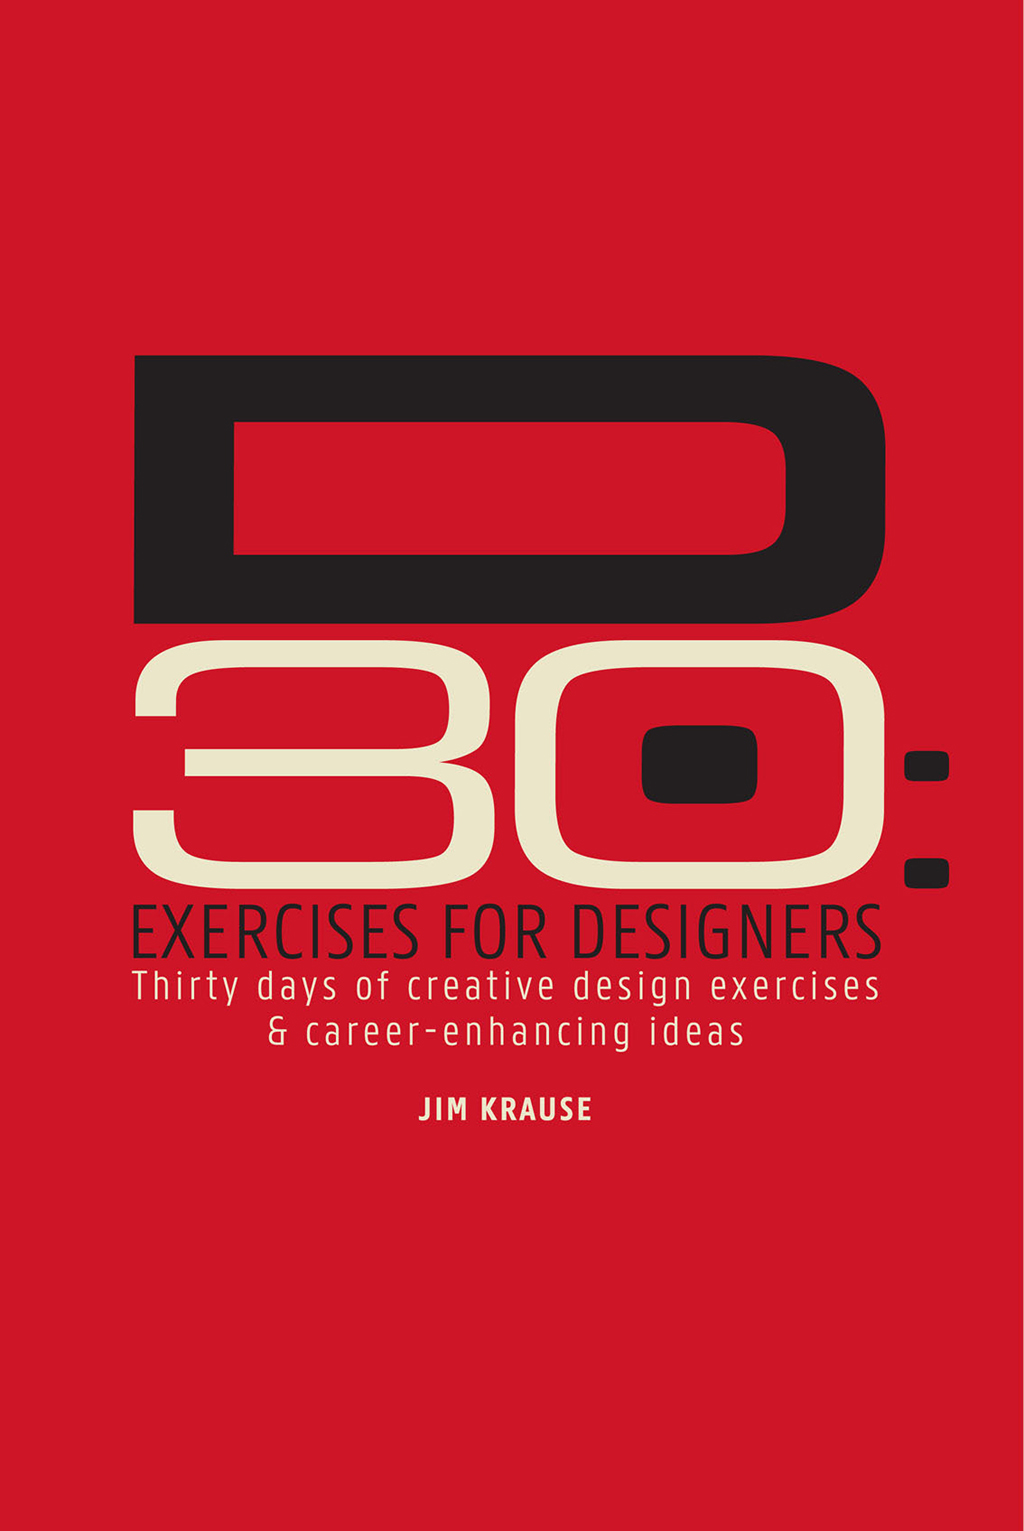 D30 - Exercises for Designers Thirty Days of Creative Design Exercises & Career-Enhancing Ideas